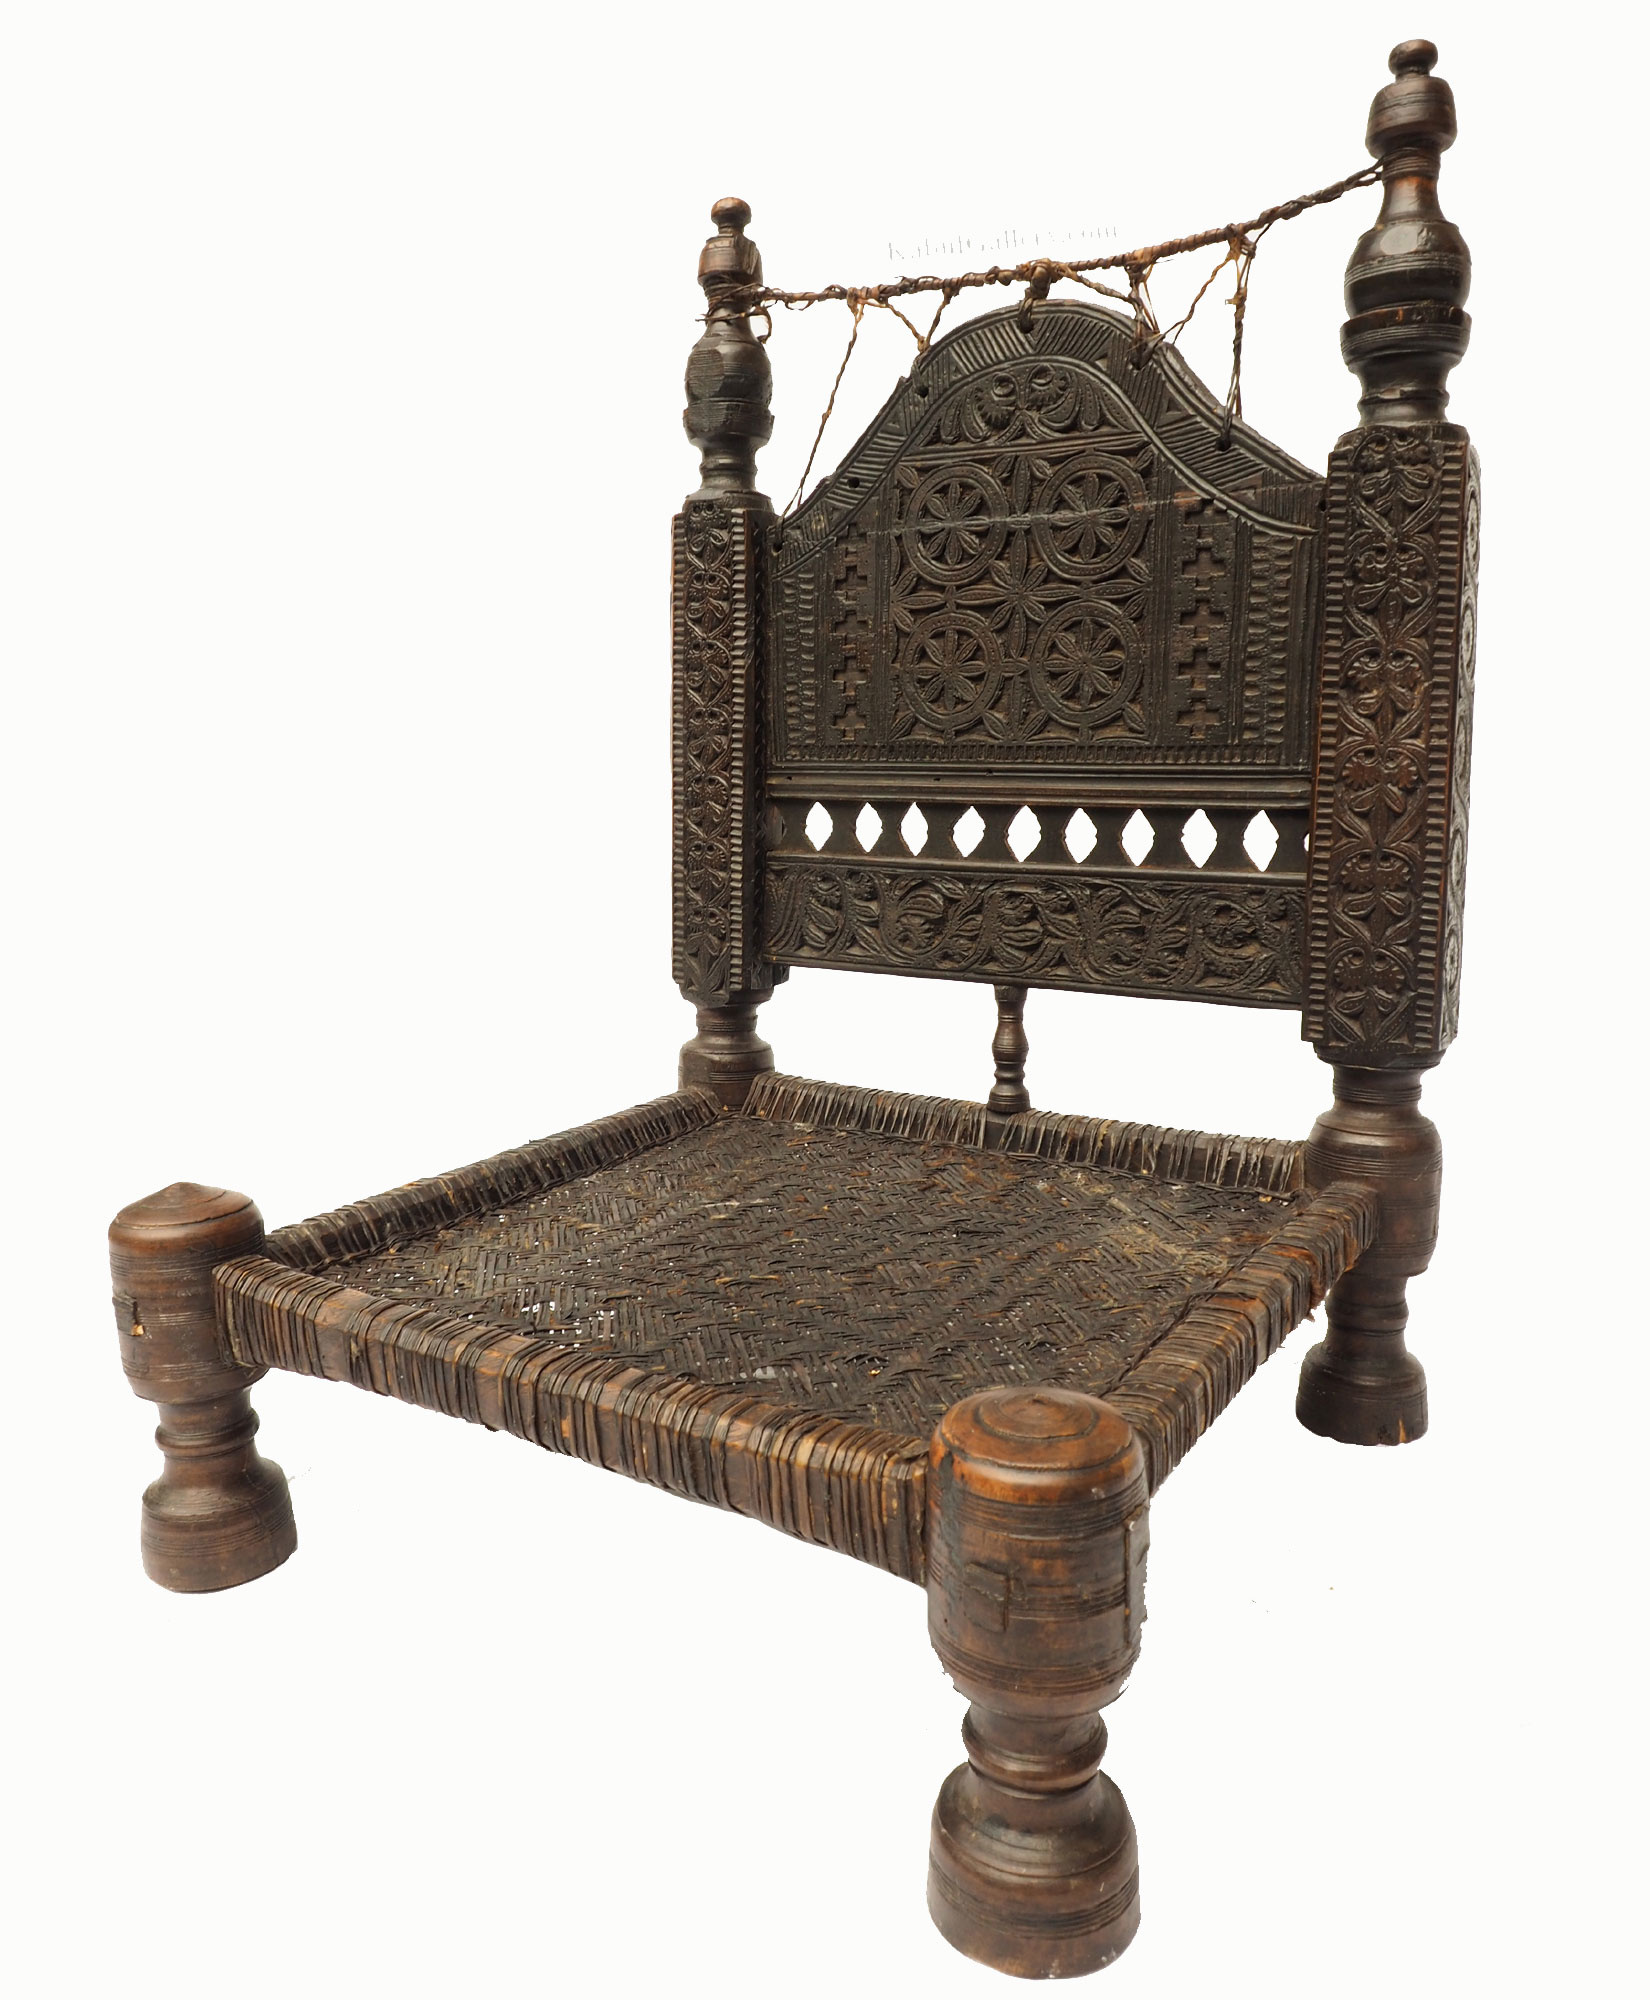 Antique Nuristan Chair Stuhl No:19/E